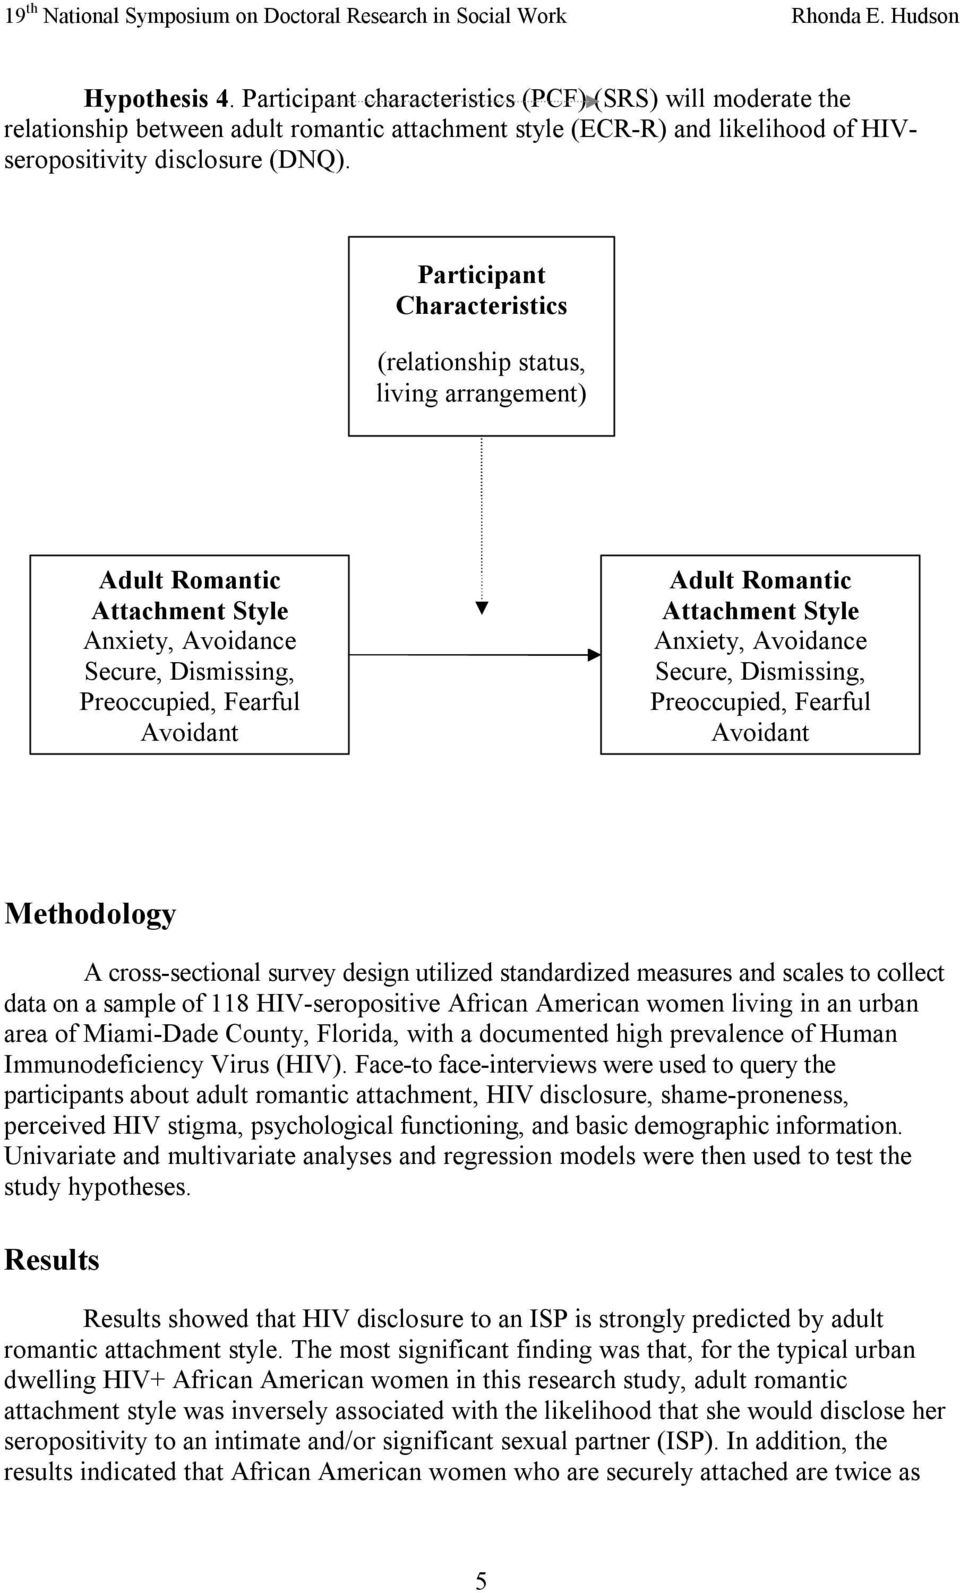 Style Anxiety, Avoidance Secure, Dismissing, Preoccupied, Fearful Avoidant Methodology A cross sectional survey design utilized standardized measures and scales to collect data on a sample of 118 HIV